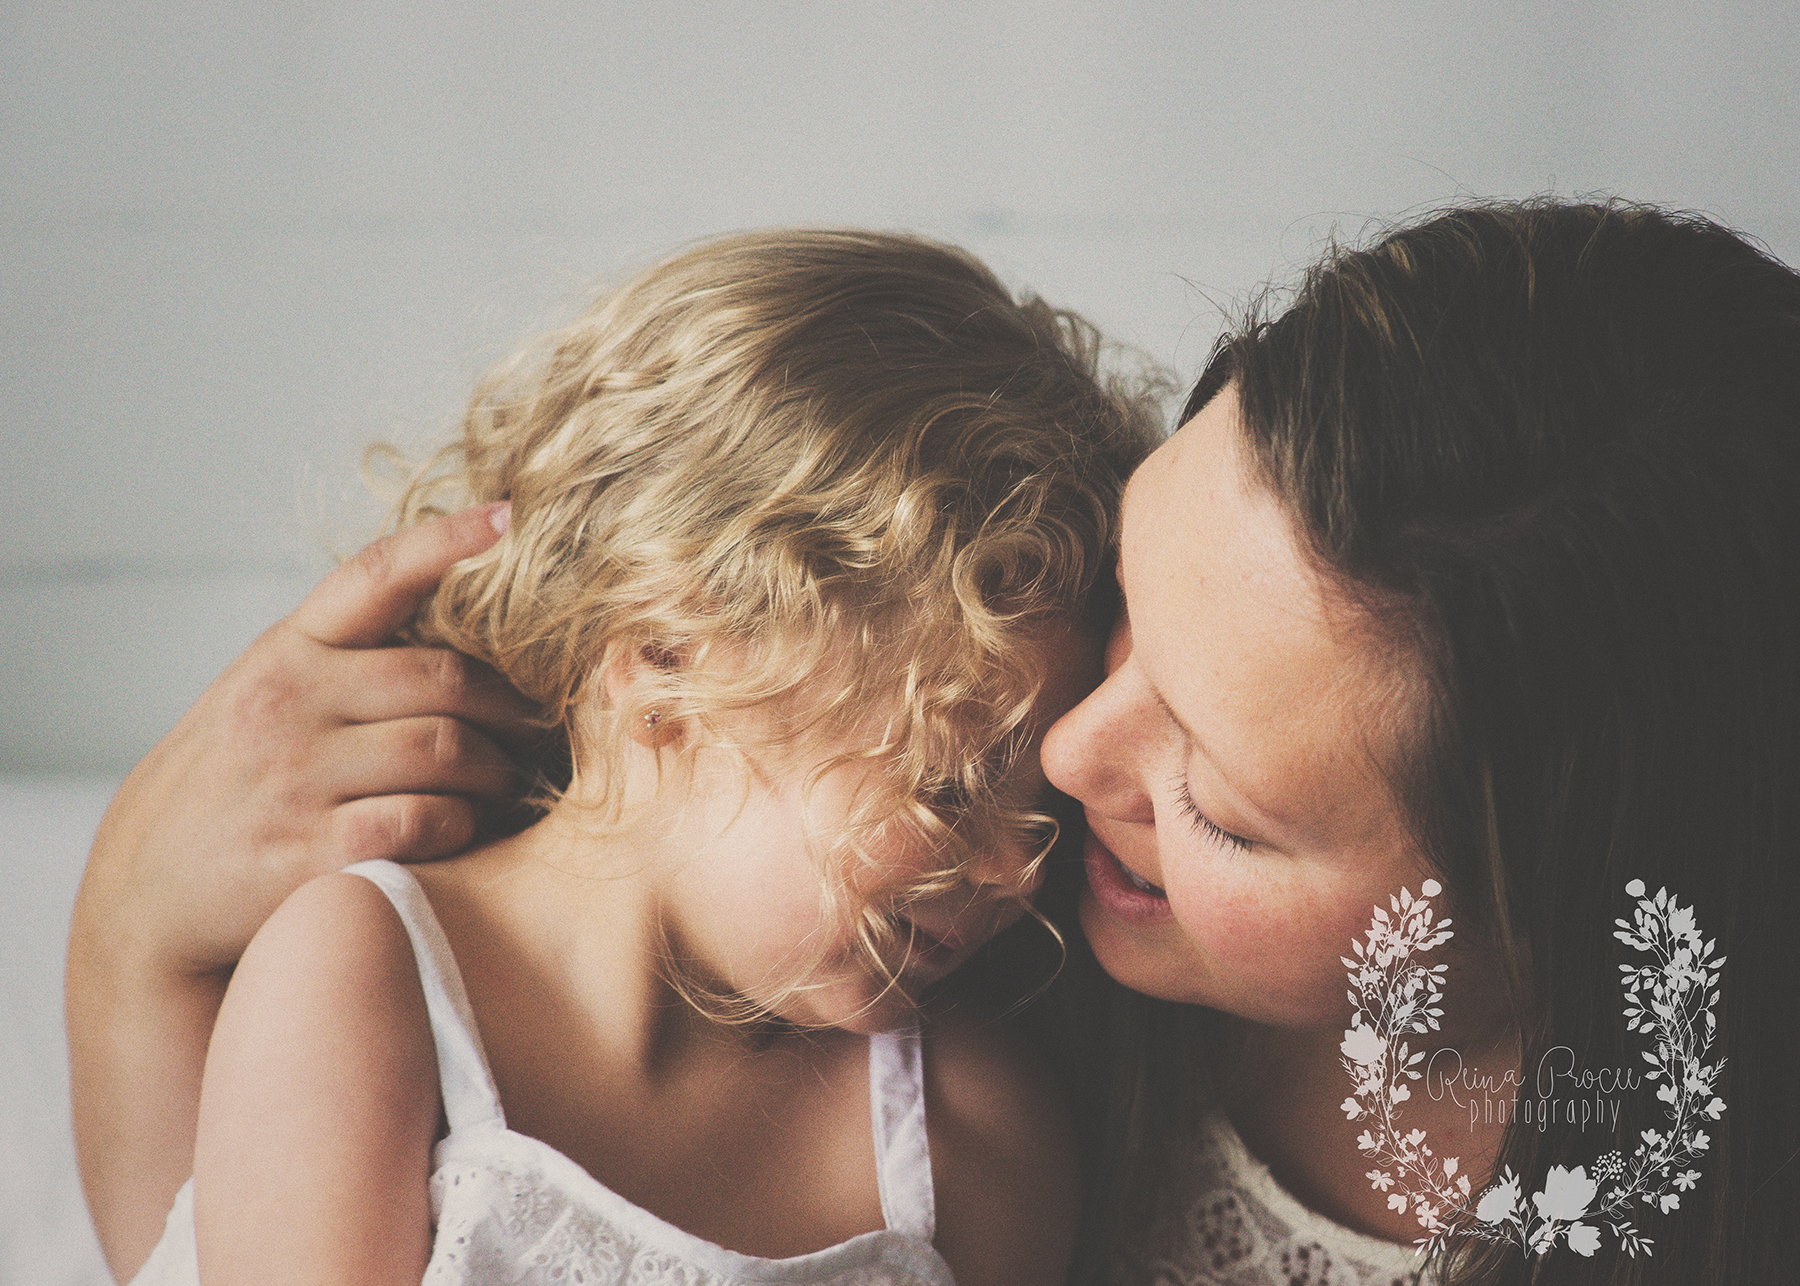 mother-child-love-family-portraits-montreal-photographer11.png